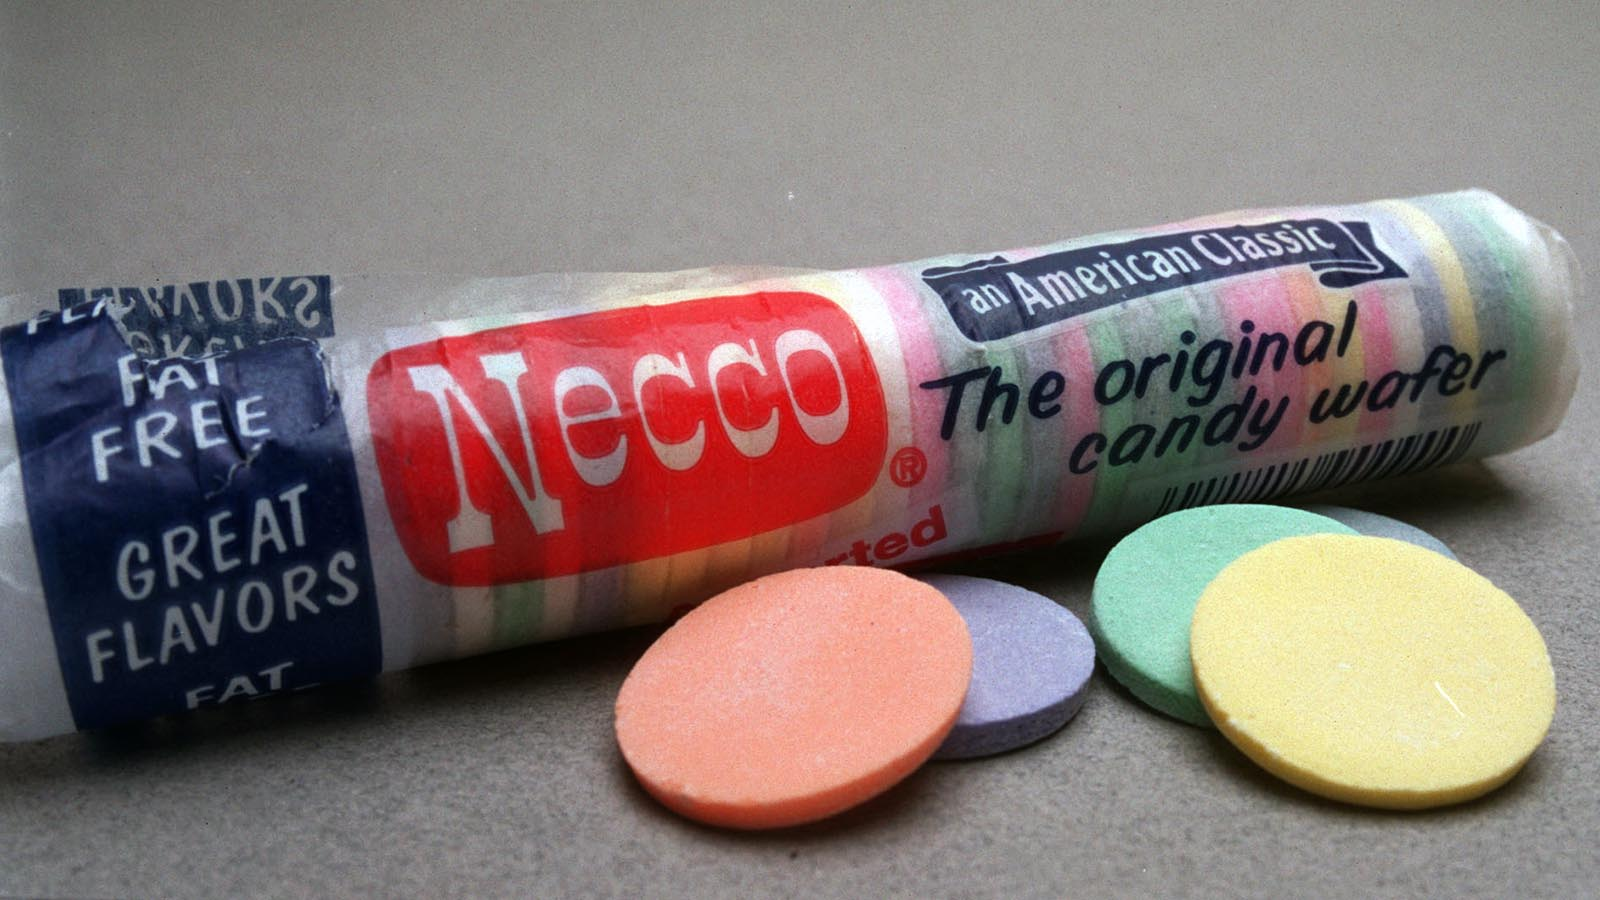 How the Necco Wafer Has Lasted This Long